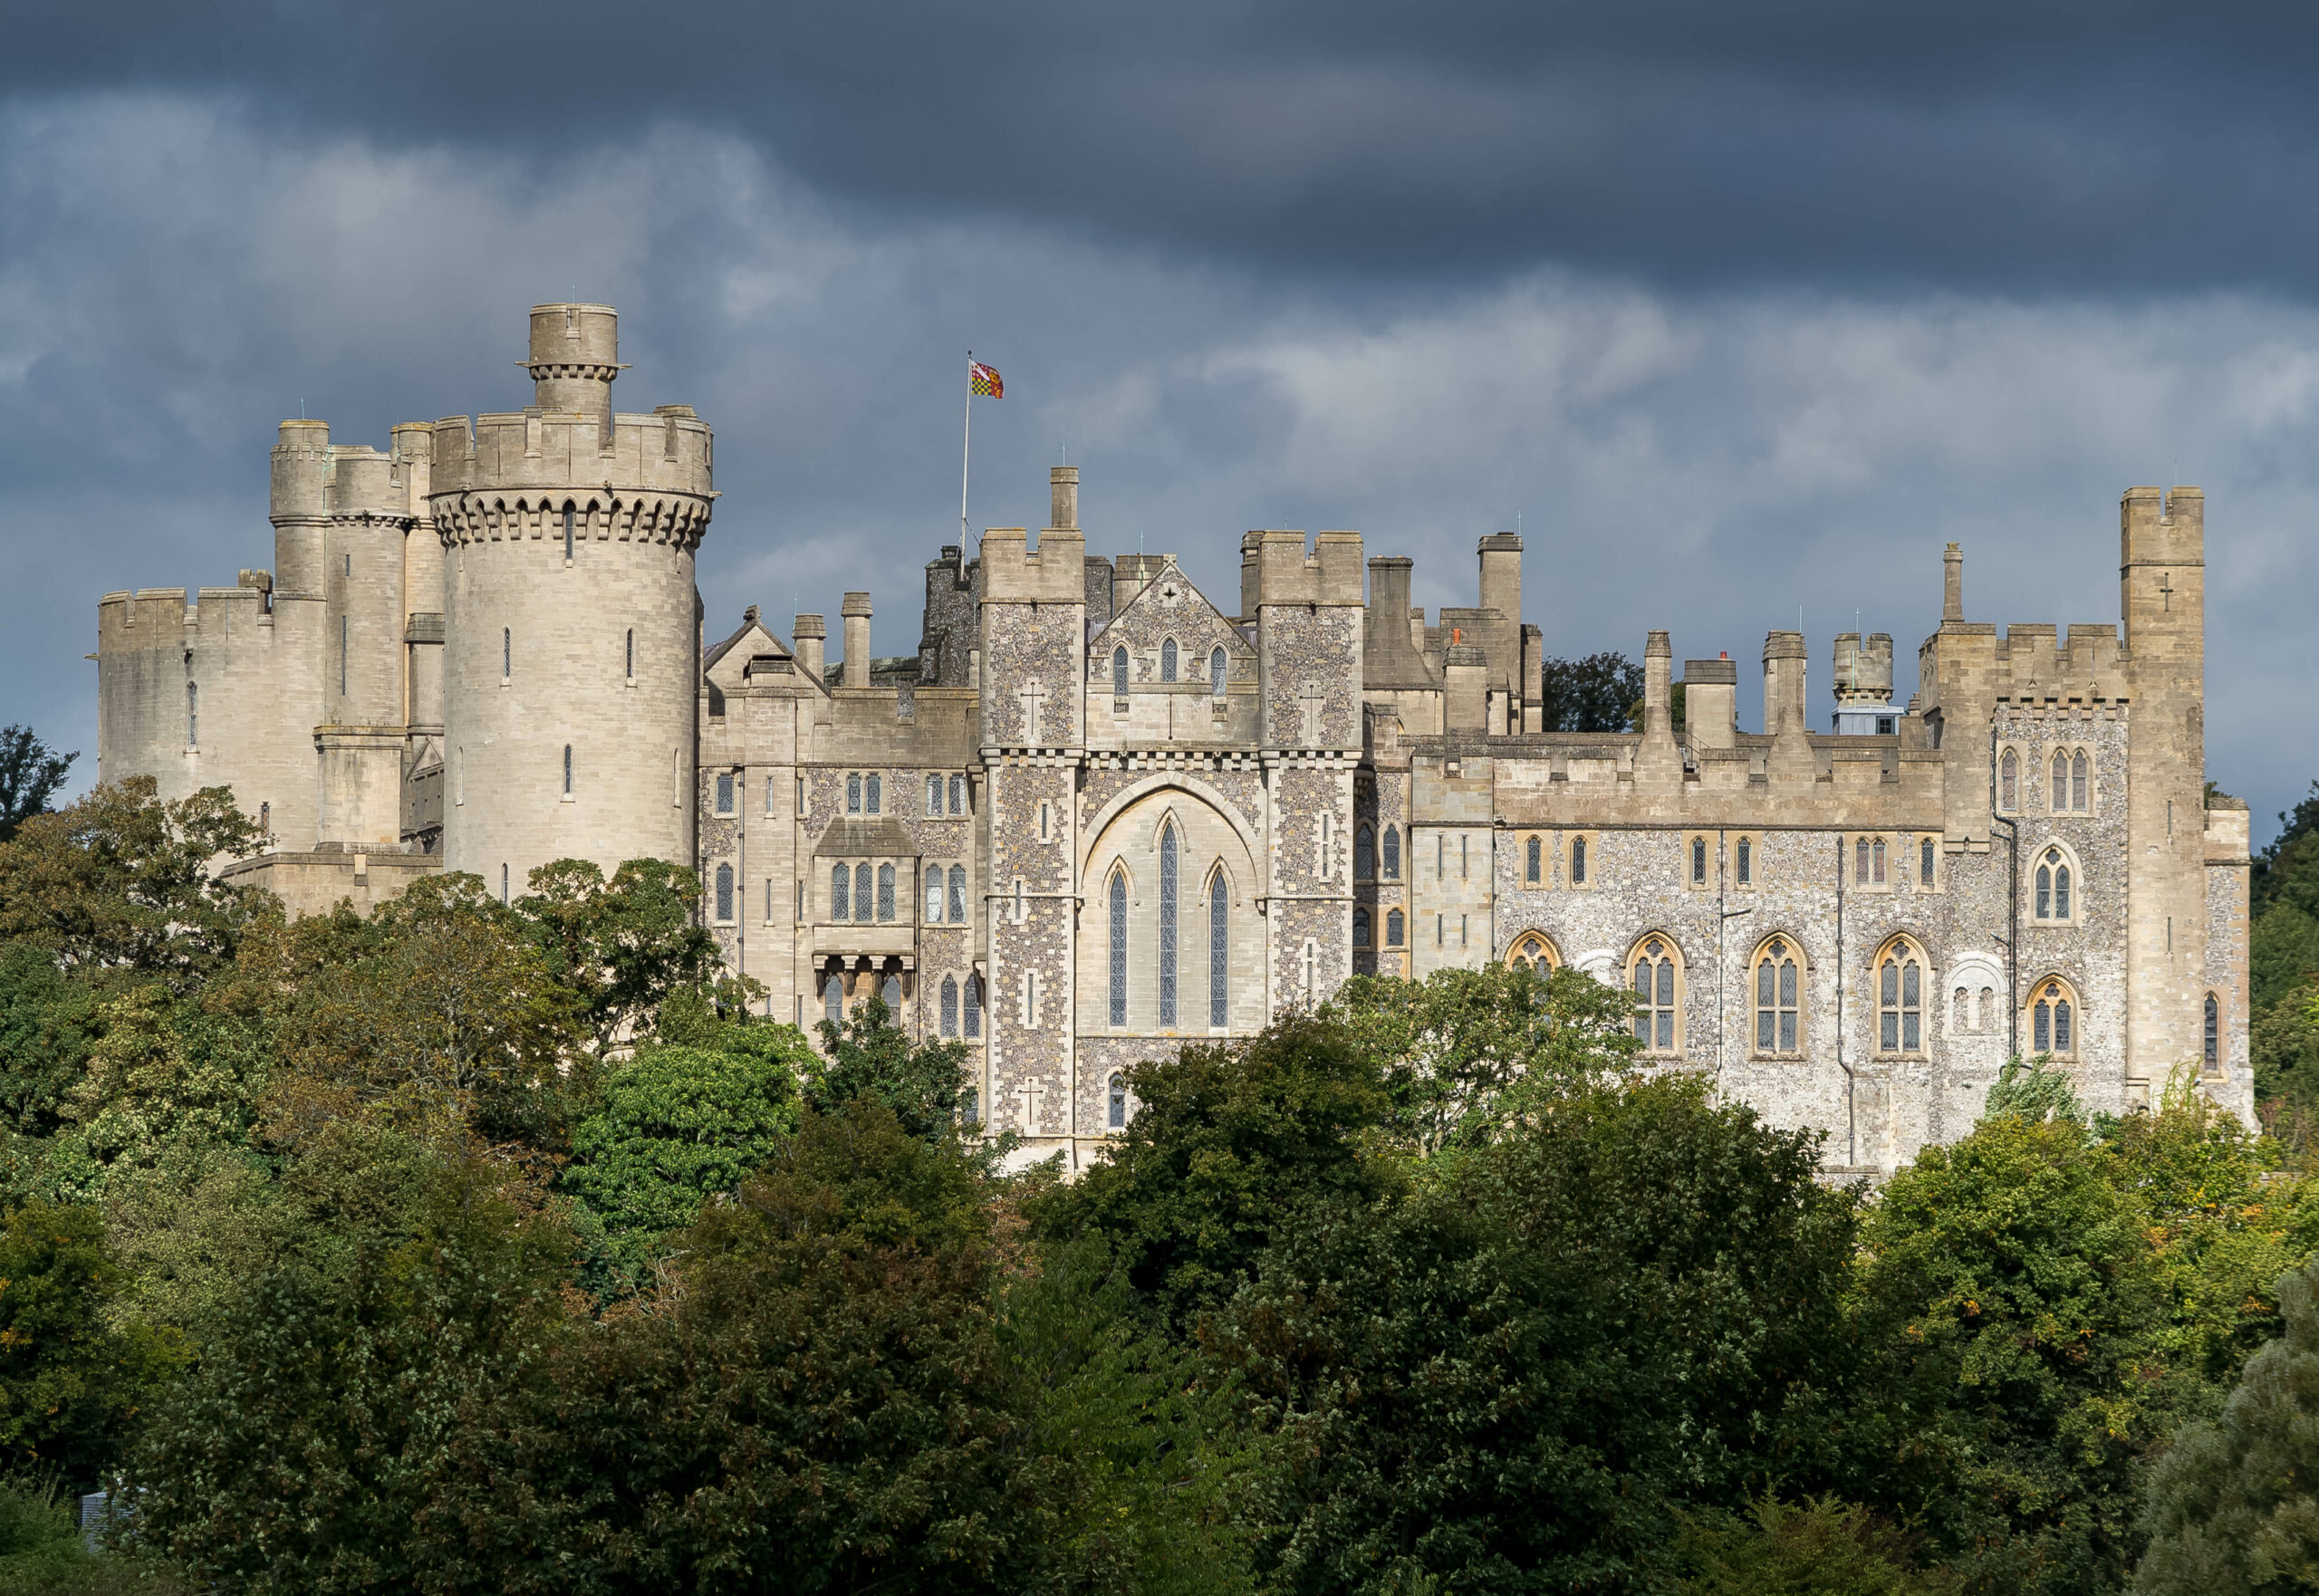 Mary, Queen of Scots' rosary among treasures stolen from Arundel Castle